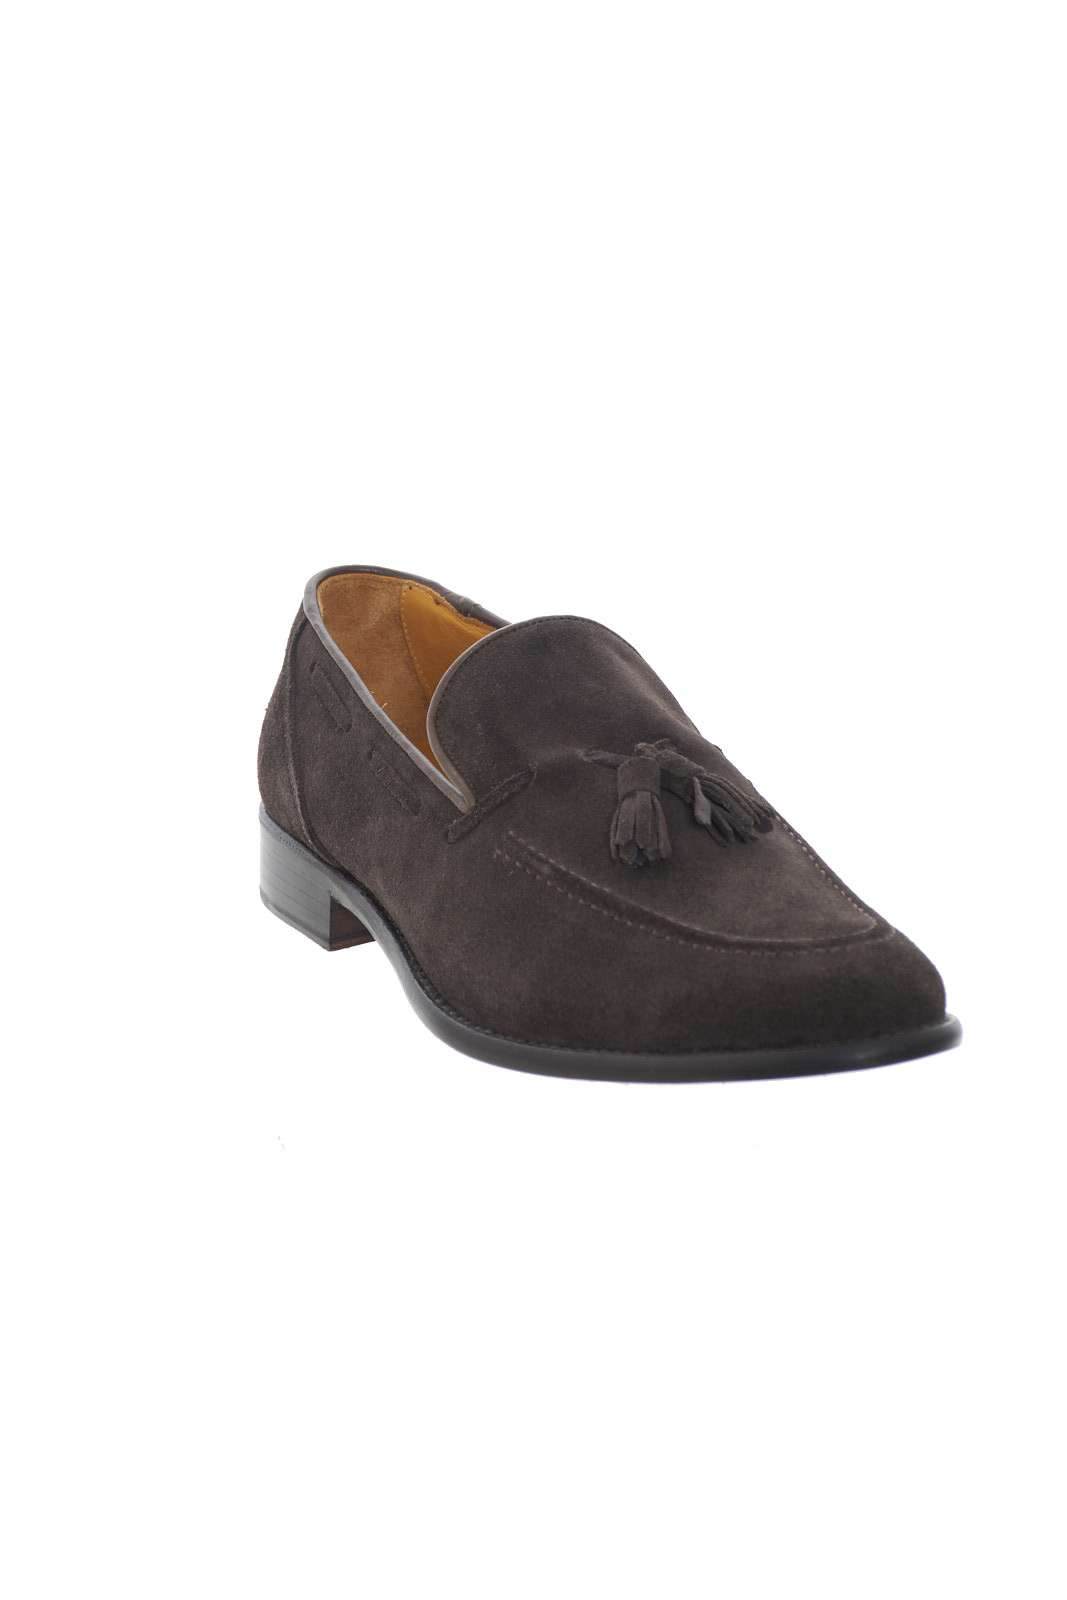 https://www.parmax.com/media/catalog/product/a/i/AI-outlet_parmax-mocassini-uomo-Florsheim-51834-B.jpg